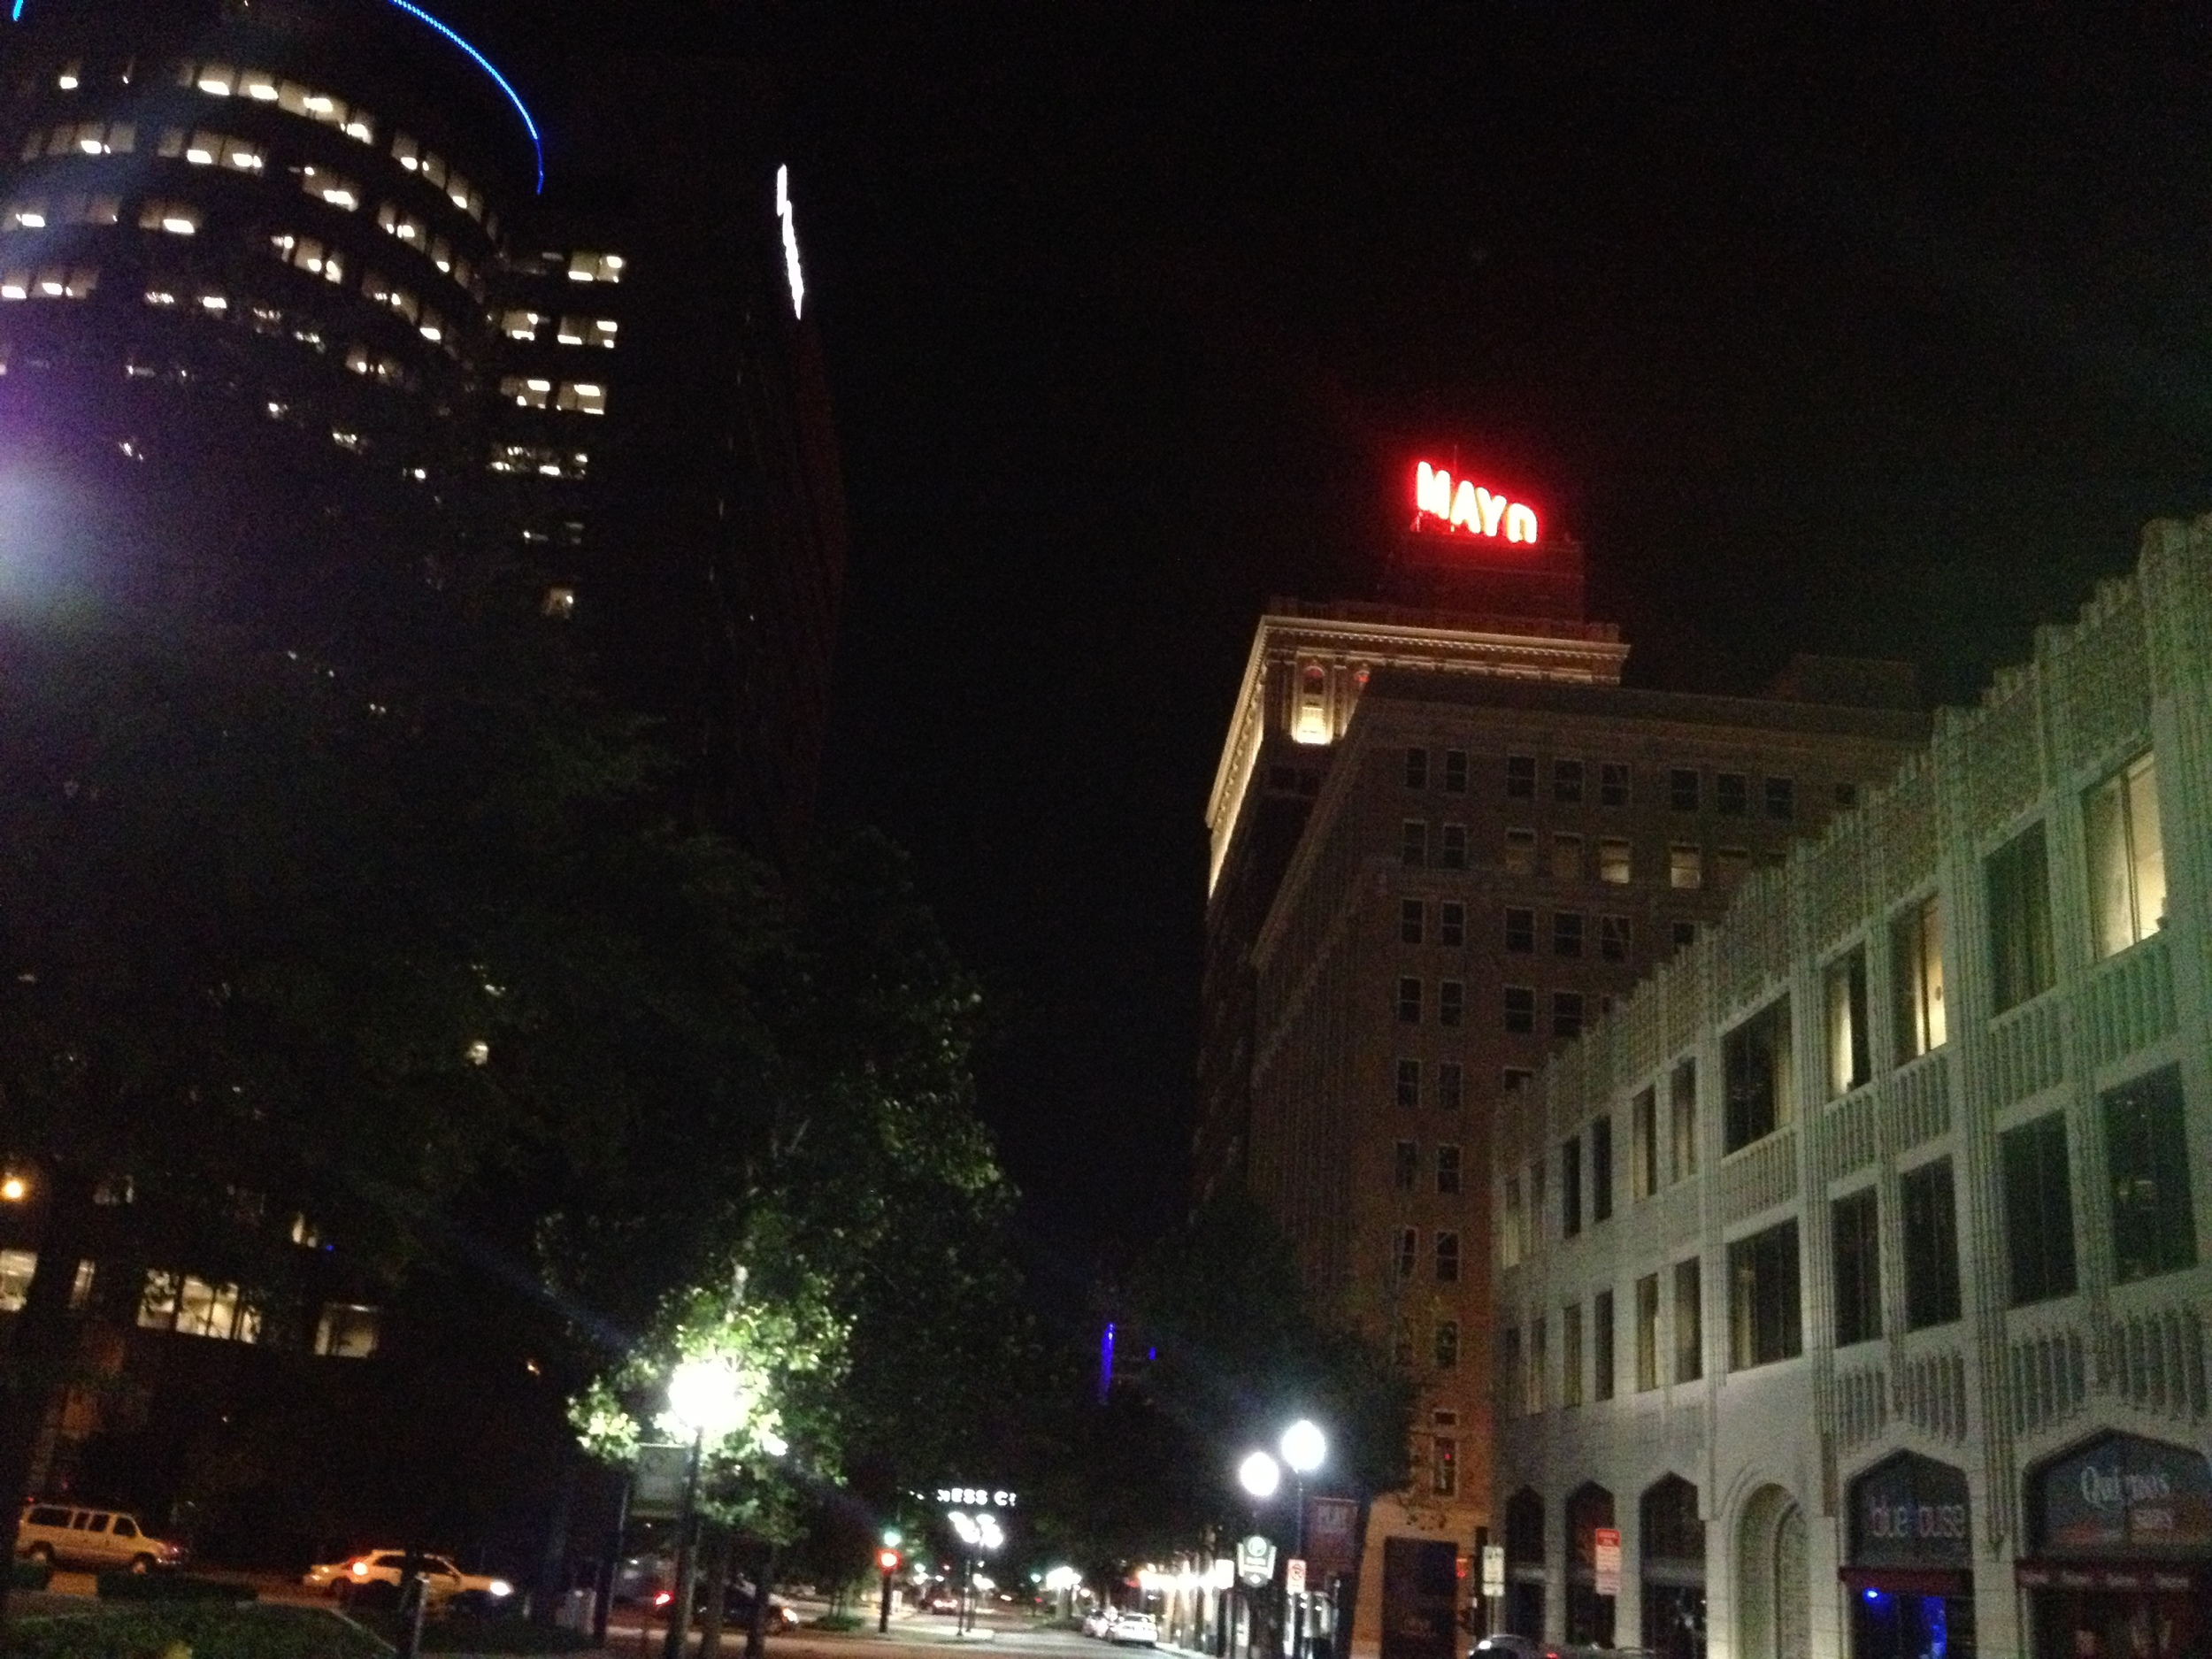 The Mayo Building sign